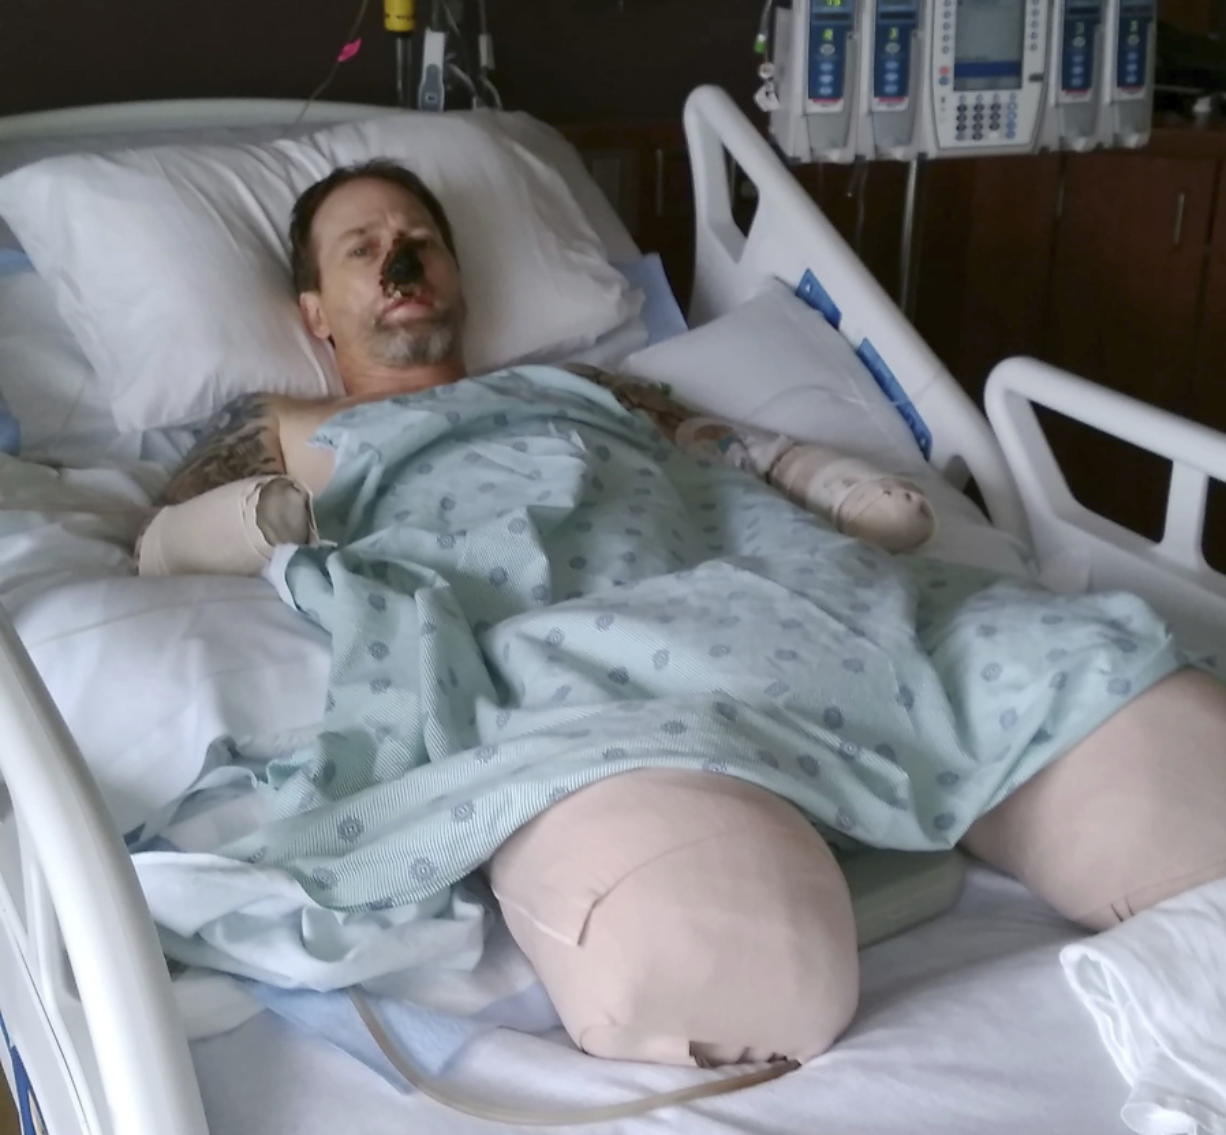 In this Aug. 2, 2018 file photo provided by Dawn Manteufel, Greg Manteufel lays in his hospital bed at Froedtert Hospital in Milwaukee. He lost parts of his arms and legs, as well as the skin of his nose and part of his upper lip from capnocytophaga, a bacteria commonly found in the saliva or cats and dogs which almost never leads to people getting sick, unless the person has a compromised immune system. Manteufel was perfectly healthy when he got sick in June of 2018. Over the last seven years, a team of researchers at Brigham and Women's Hospital in Boston, connected to Harvard Medical School, have tested other healthy people who were affected and developed a theory on why they were affected- a gene change in all the victims. (Dawn Manteufel via AP) (Carrie Antlfinger/Associated Press)